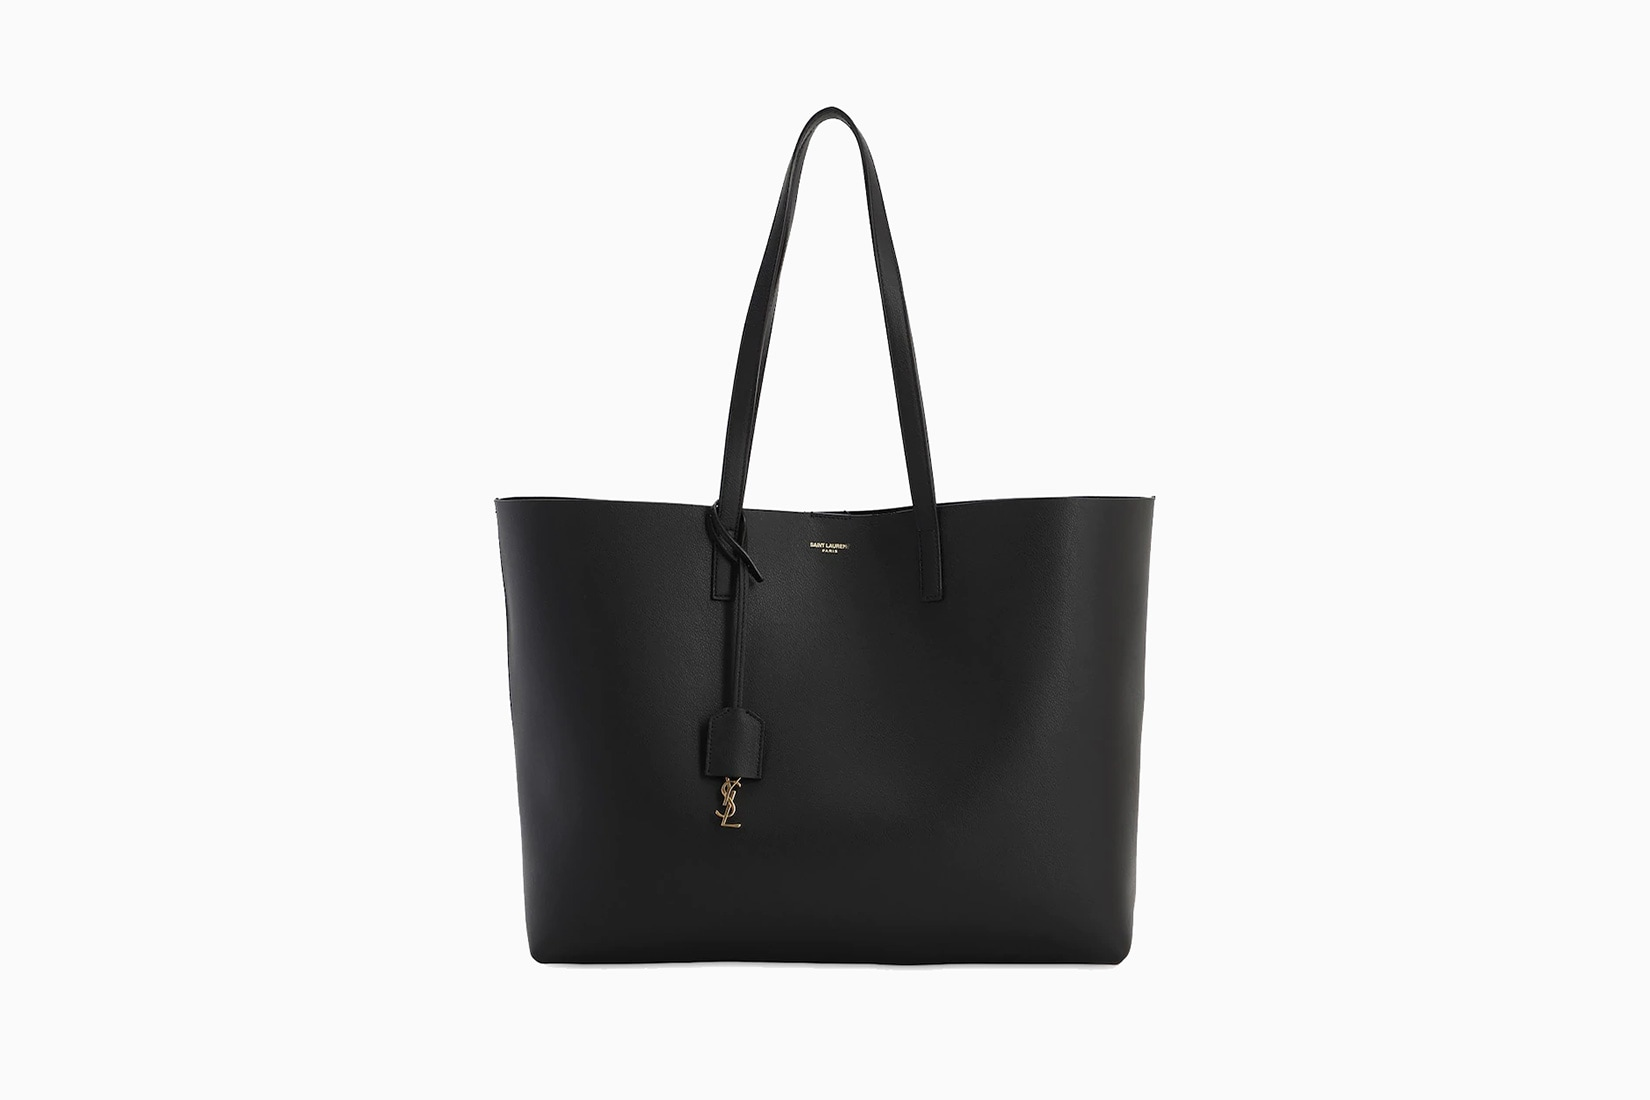 best travel tote bags women designer YSL review - Luxe Digital